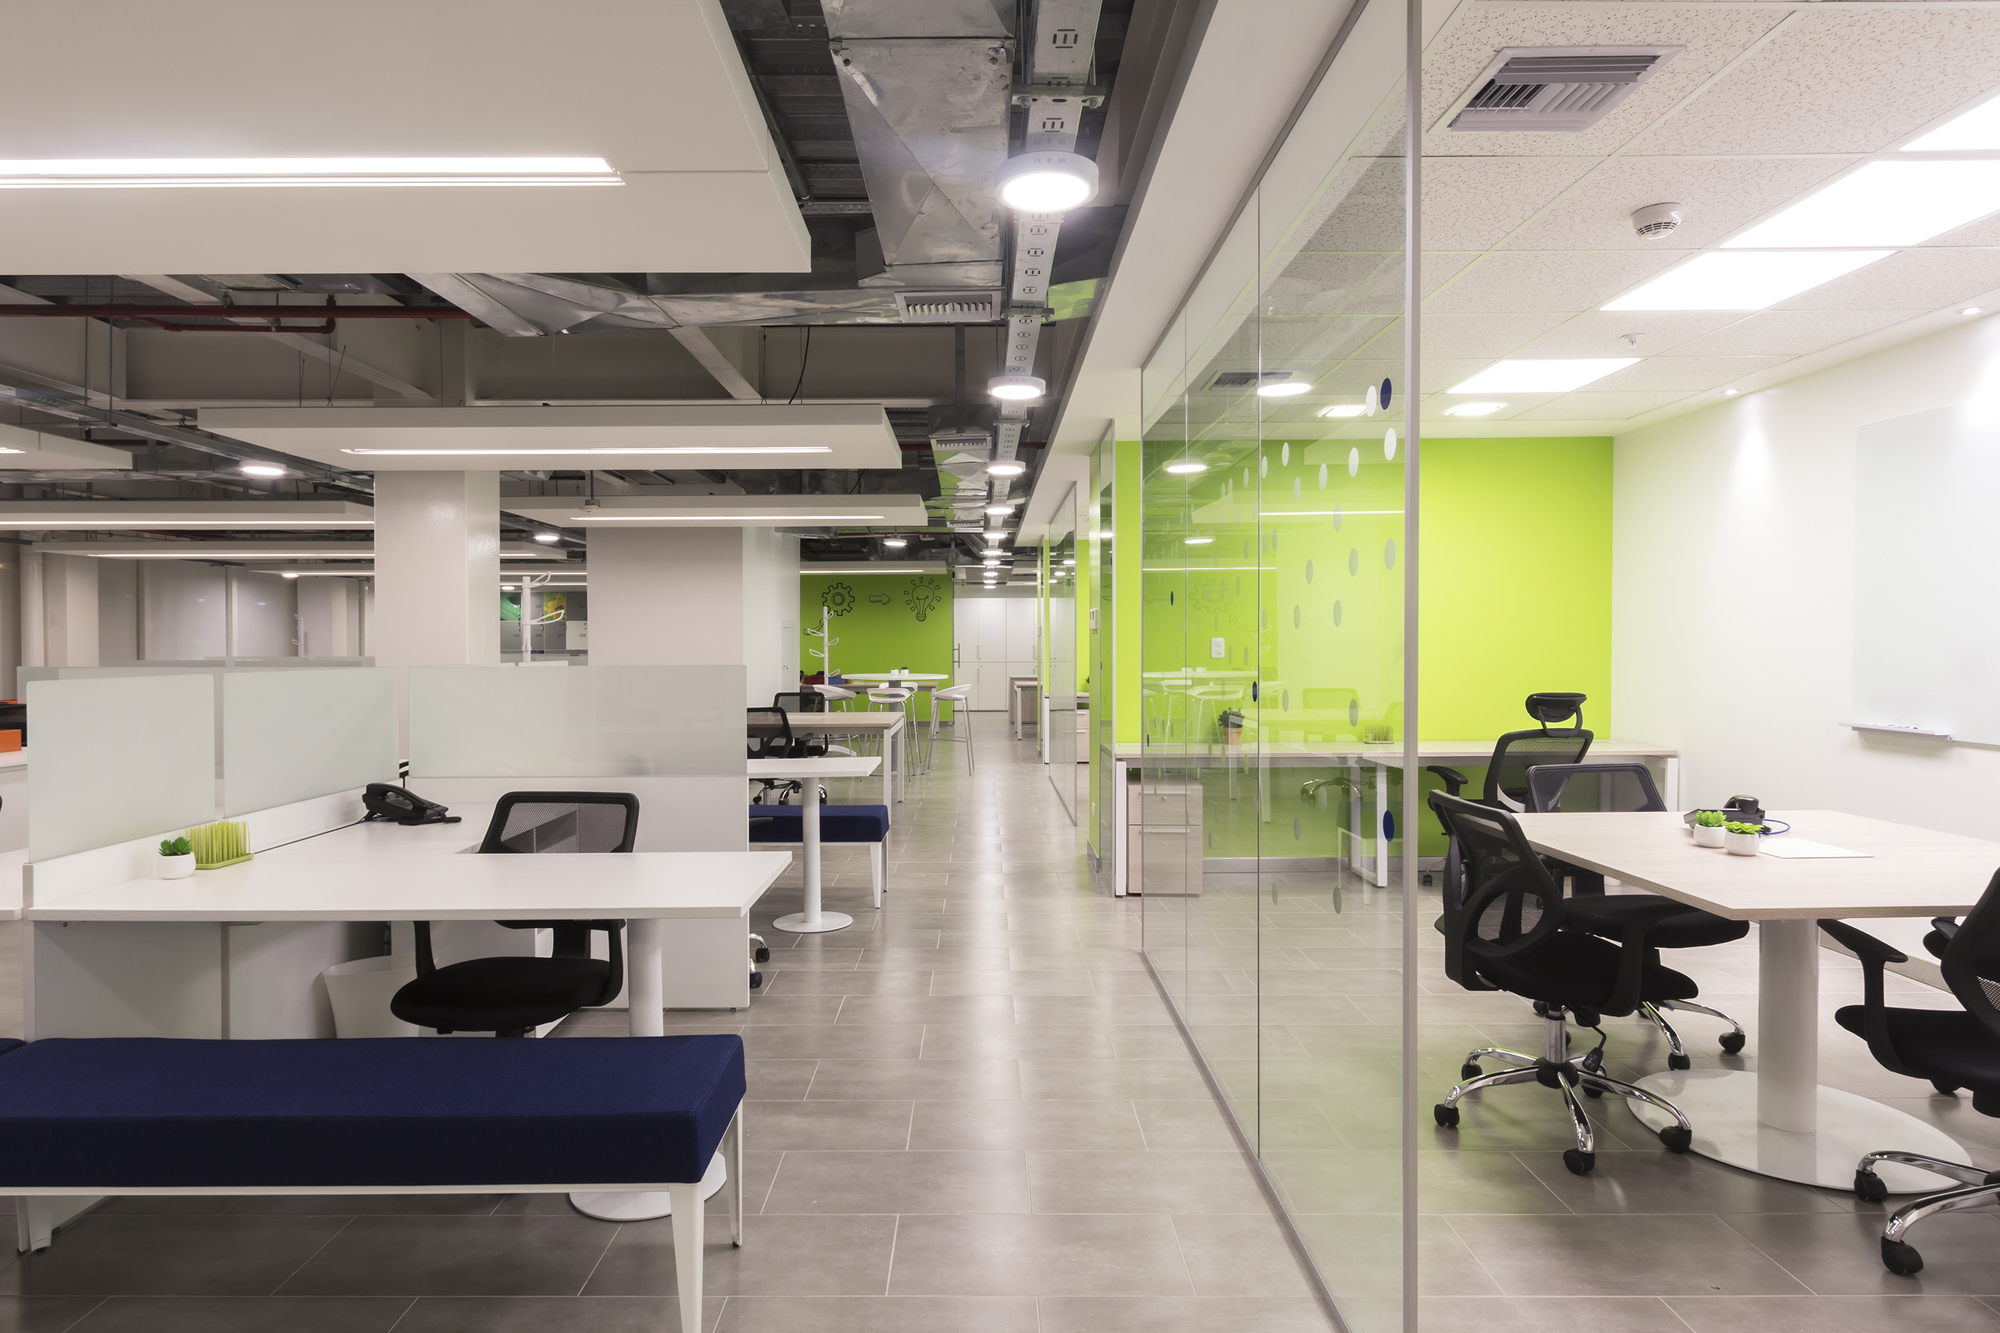 Oficinas Telefnica  Contract Workplaces  Plataforma